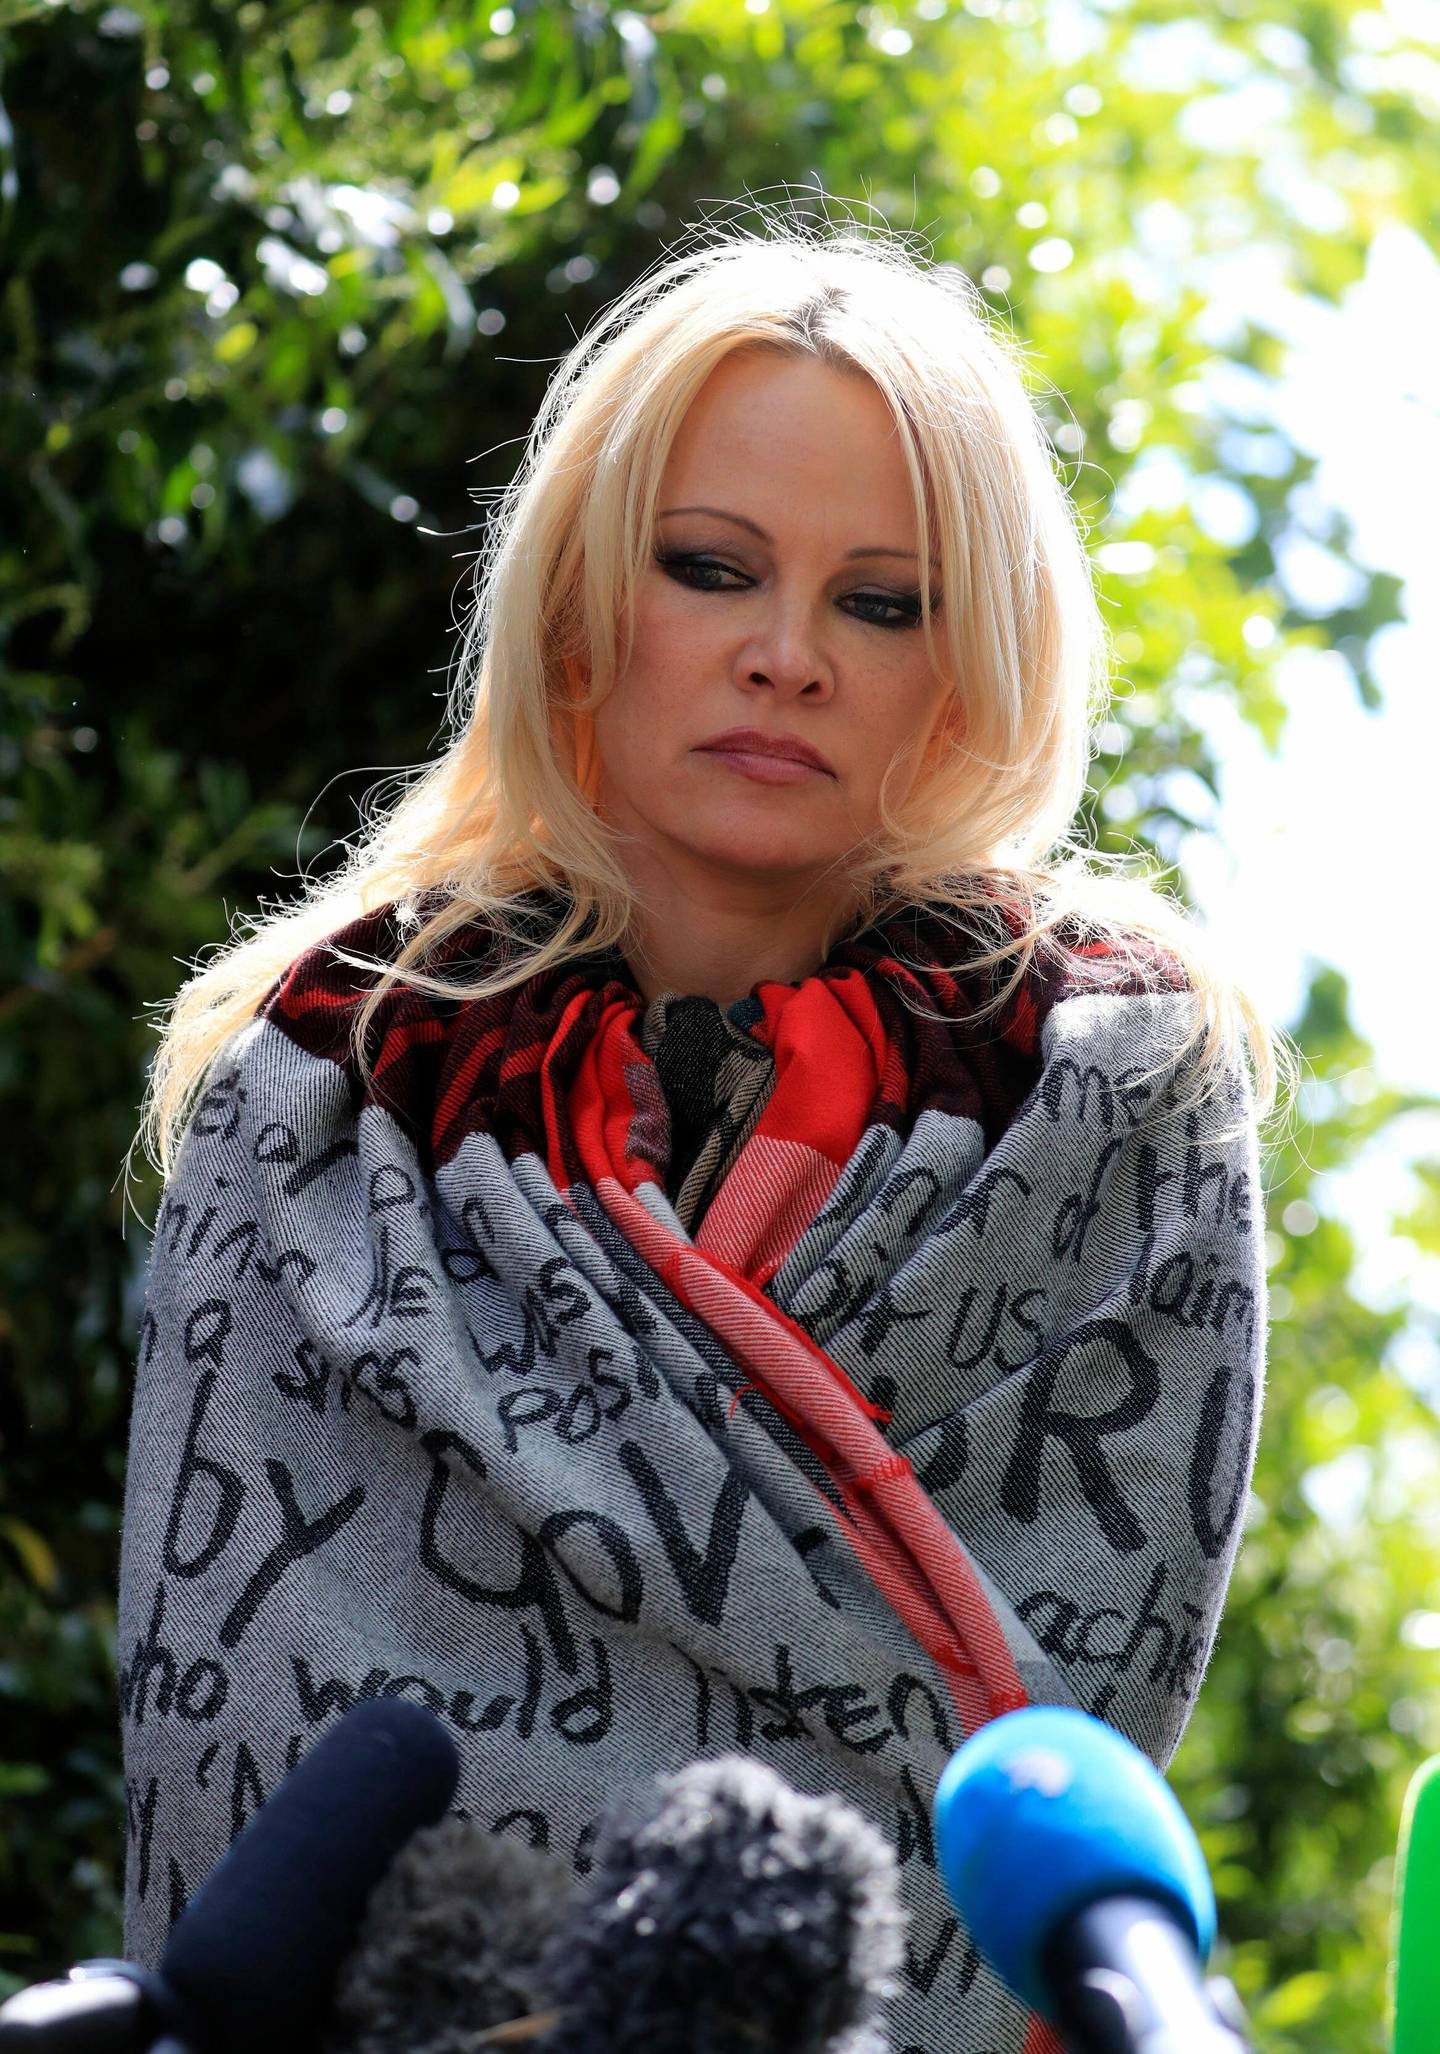 US actress Pamela Anderson speaks to the media outside Belmarsh Prison in south-east London, after visiting WikiLeaks founder Julian Assange, Tuesday May 7, 2019. (Gareth Fuller/PA via AP)